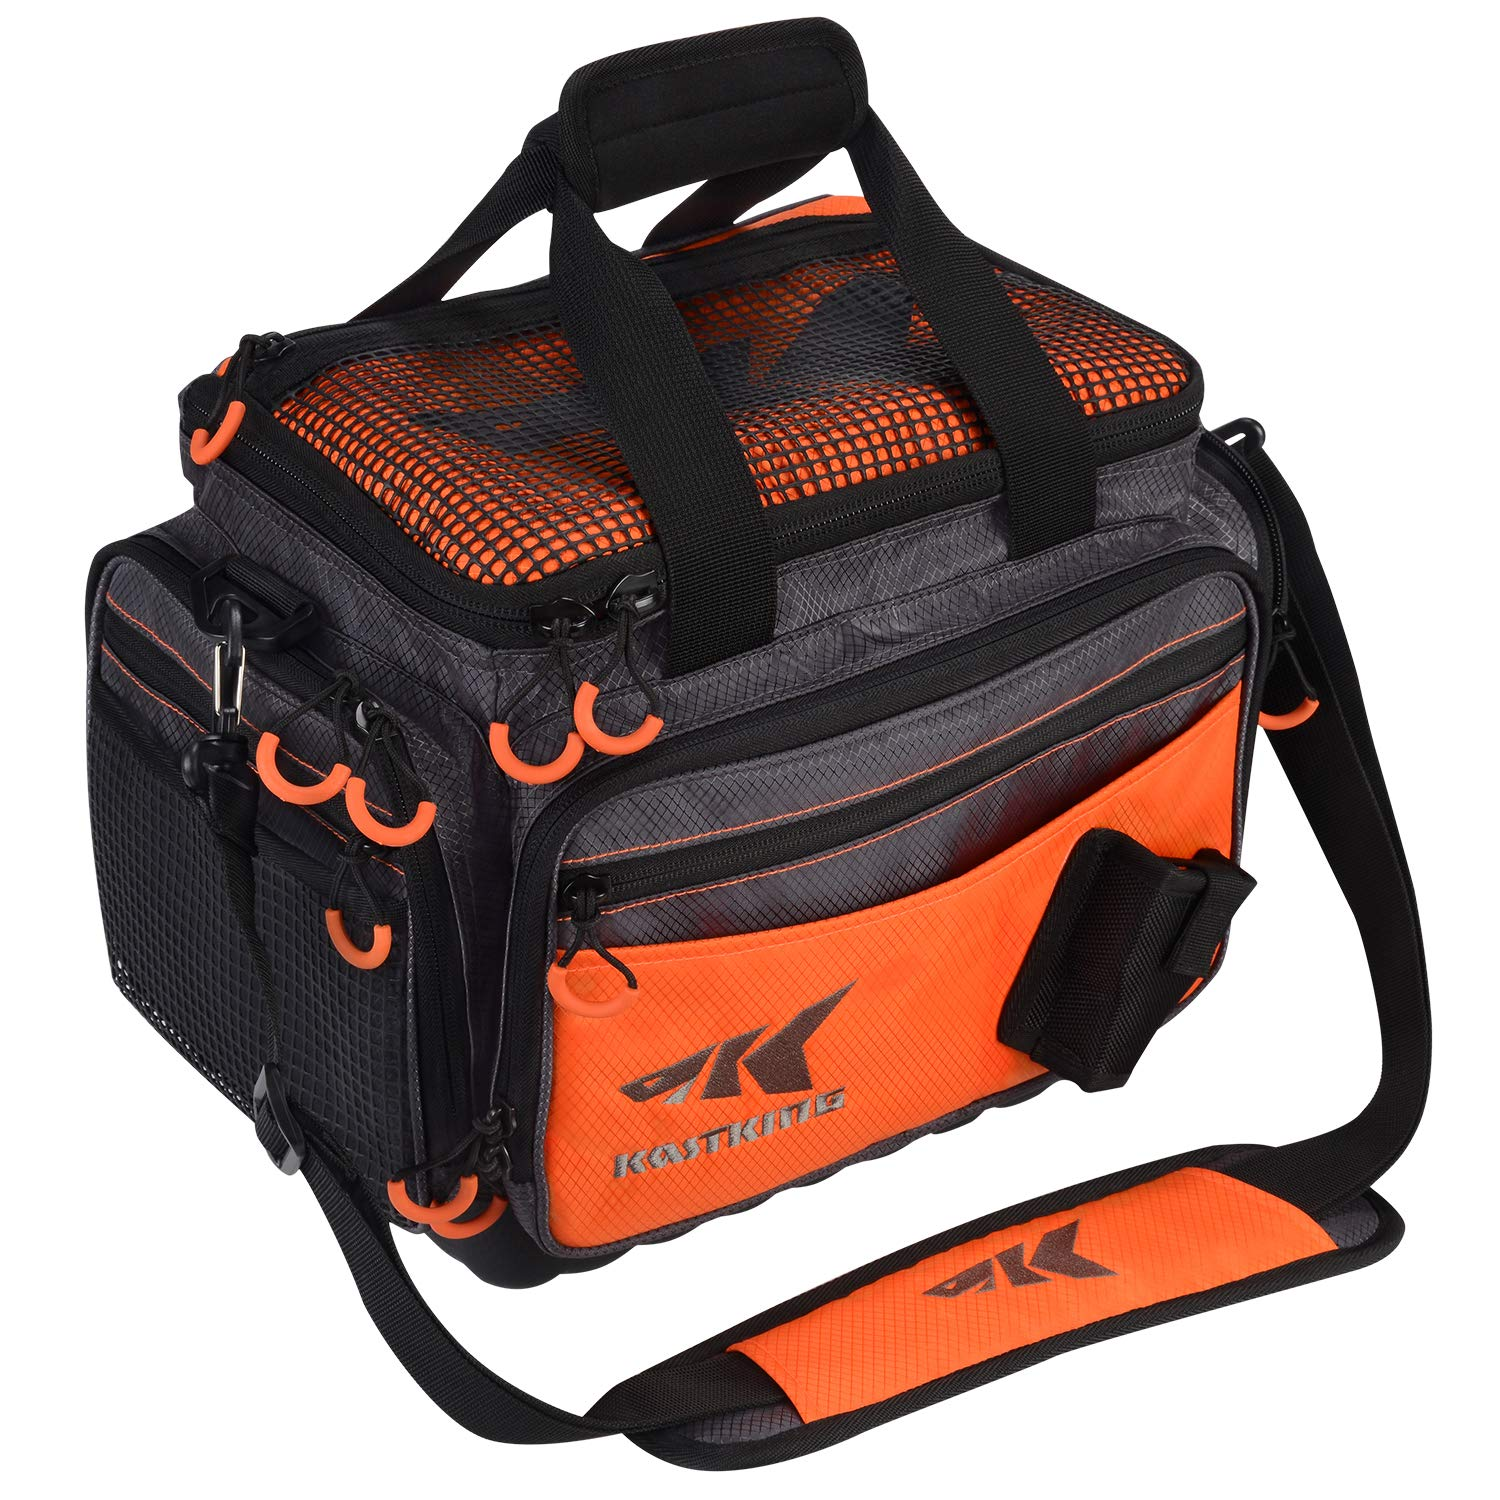 KastKing Fishing Tackle Bags, Fishing Gear Bag, Saltwater Resistant Tackle Bag, Large Waterproof Fishing Bag,Medium-Hoss(Without Trays, 15x11x10.25 Inches), Orange by KastKing